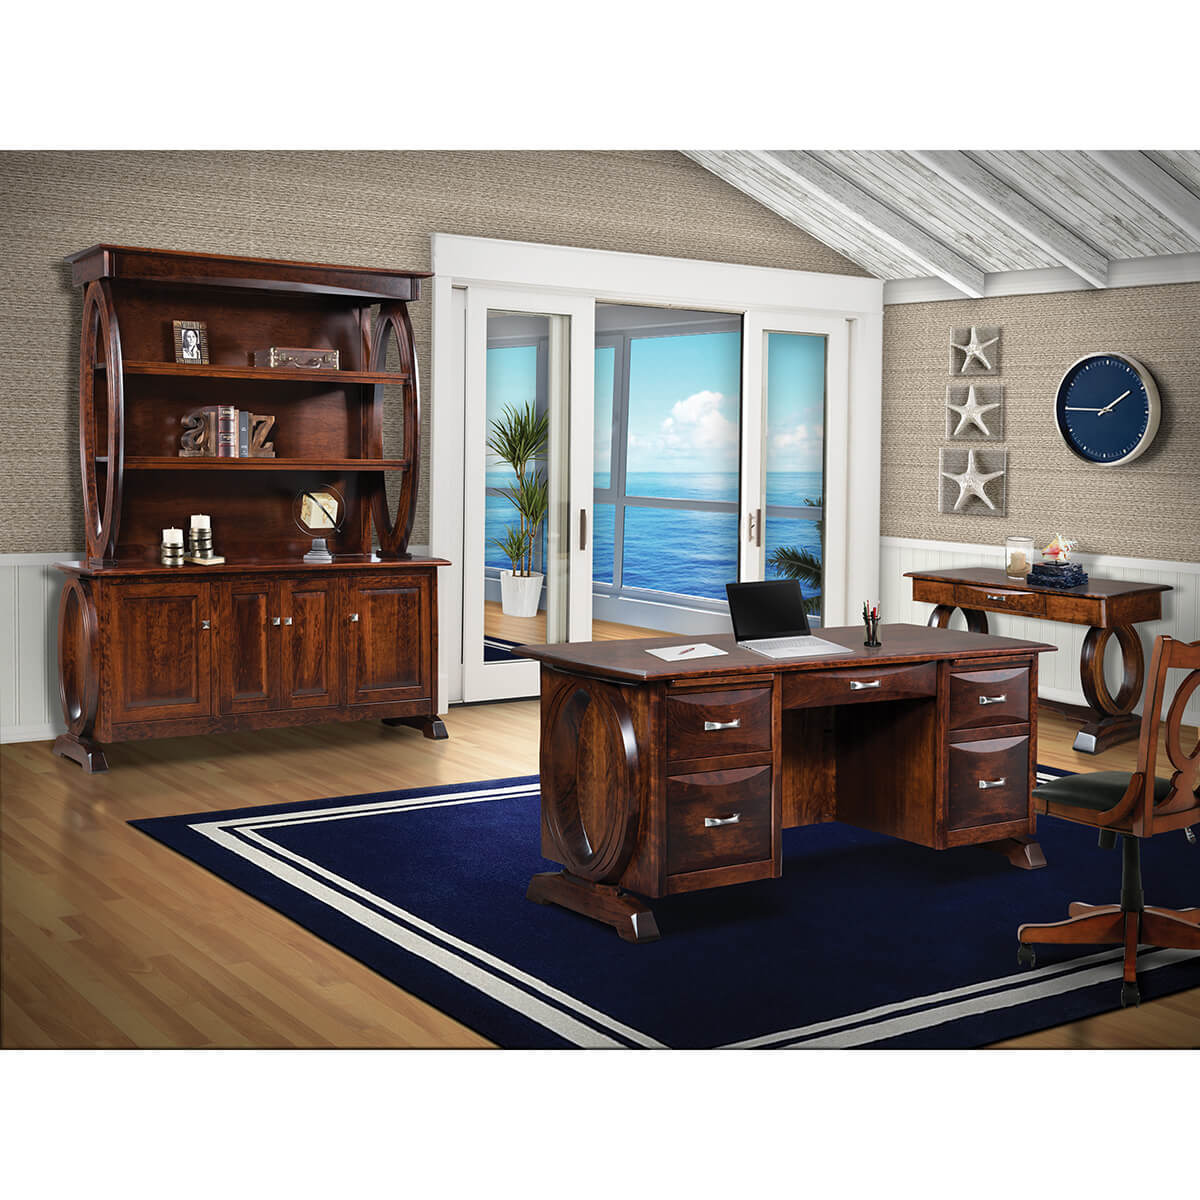 1 Office Collections Amish Hills Handmade Furniture